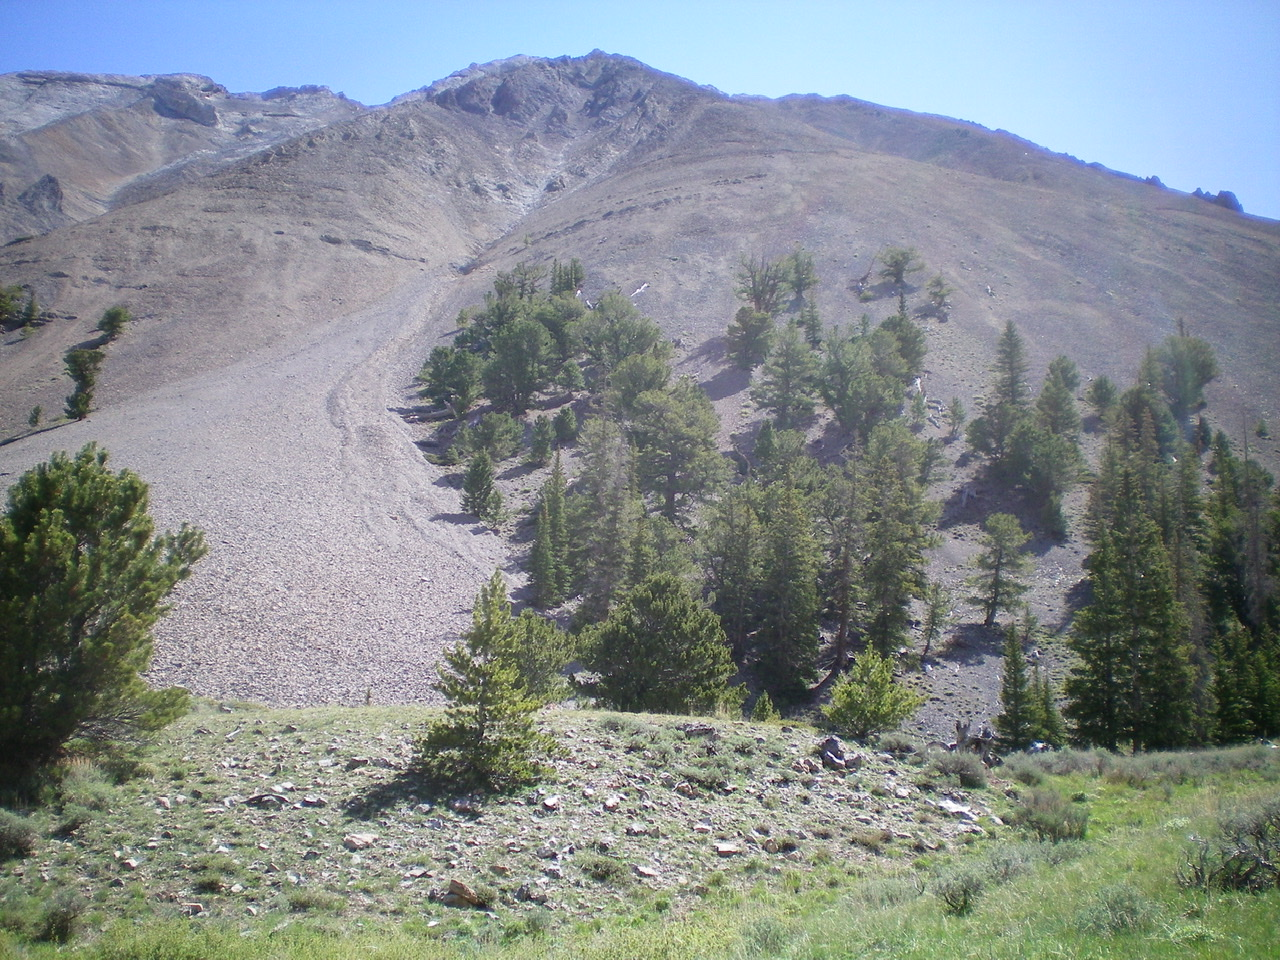 The West Gully (center of photo) and West Shoulder (has trees on its lower section) of Black and White Peak. The West Ridge is on the left side of the gully. The West Shoulder is on the right side of the gully. The ascent route begins left of the trees in the center of the gully then moves rightward onto the shoulder higher up. The shoulder then bends left-ish to join the West Ridge high up. Livingston Douglas Photo